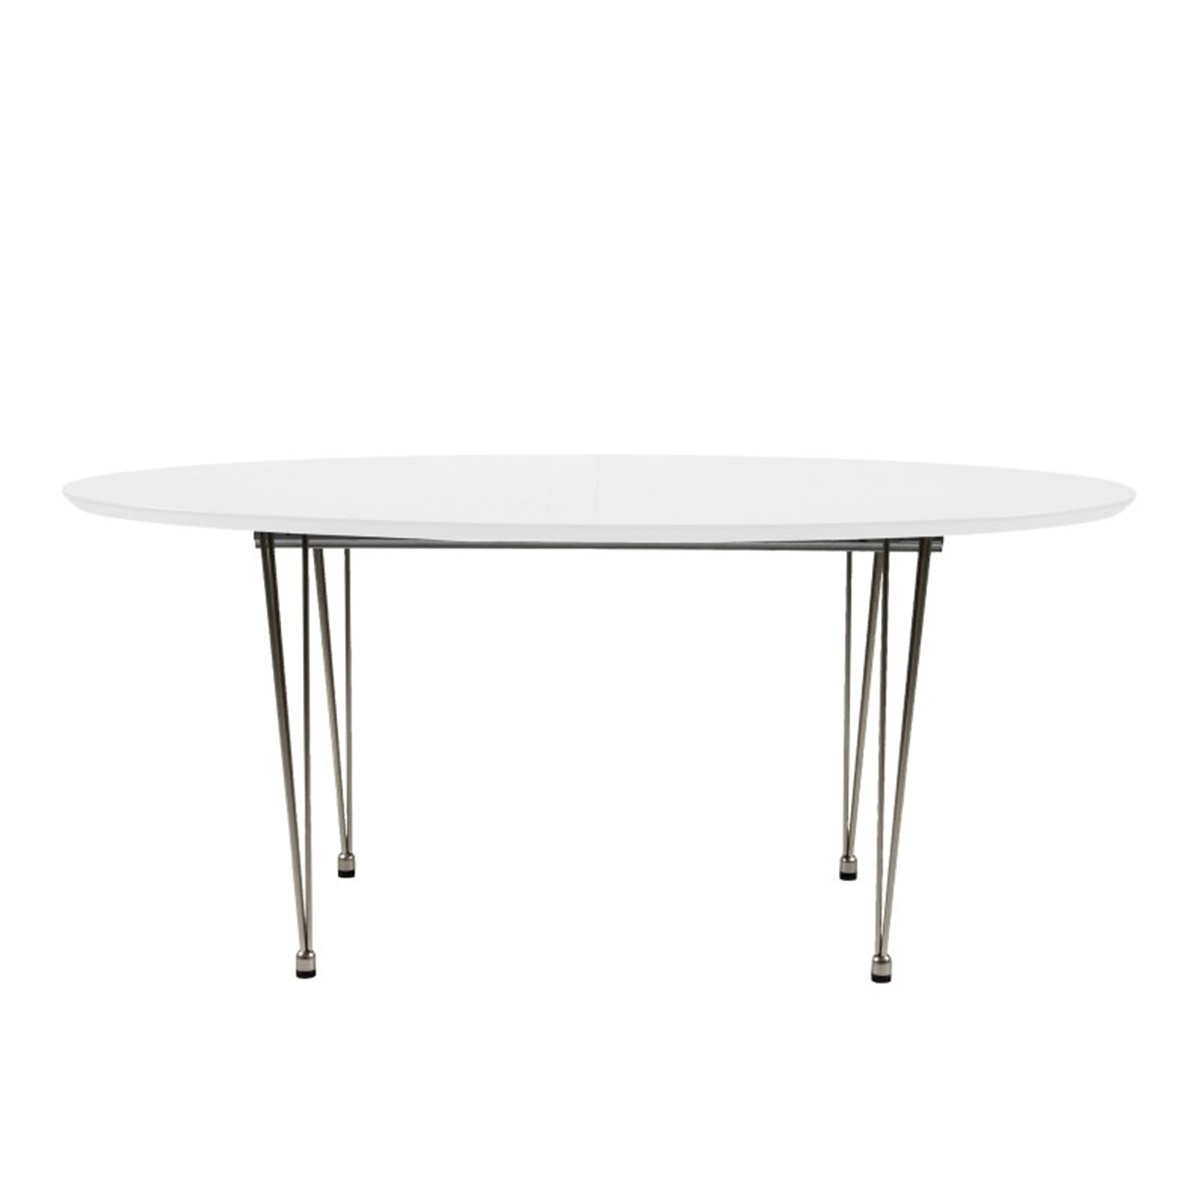 Bobby oval extending dining table white contemporary dining fads - White extending dining tables ...